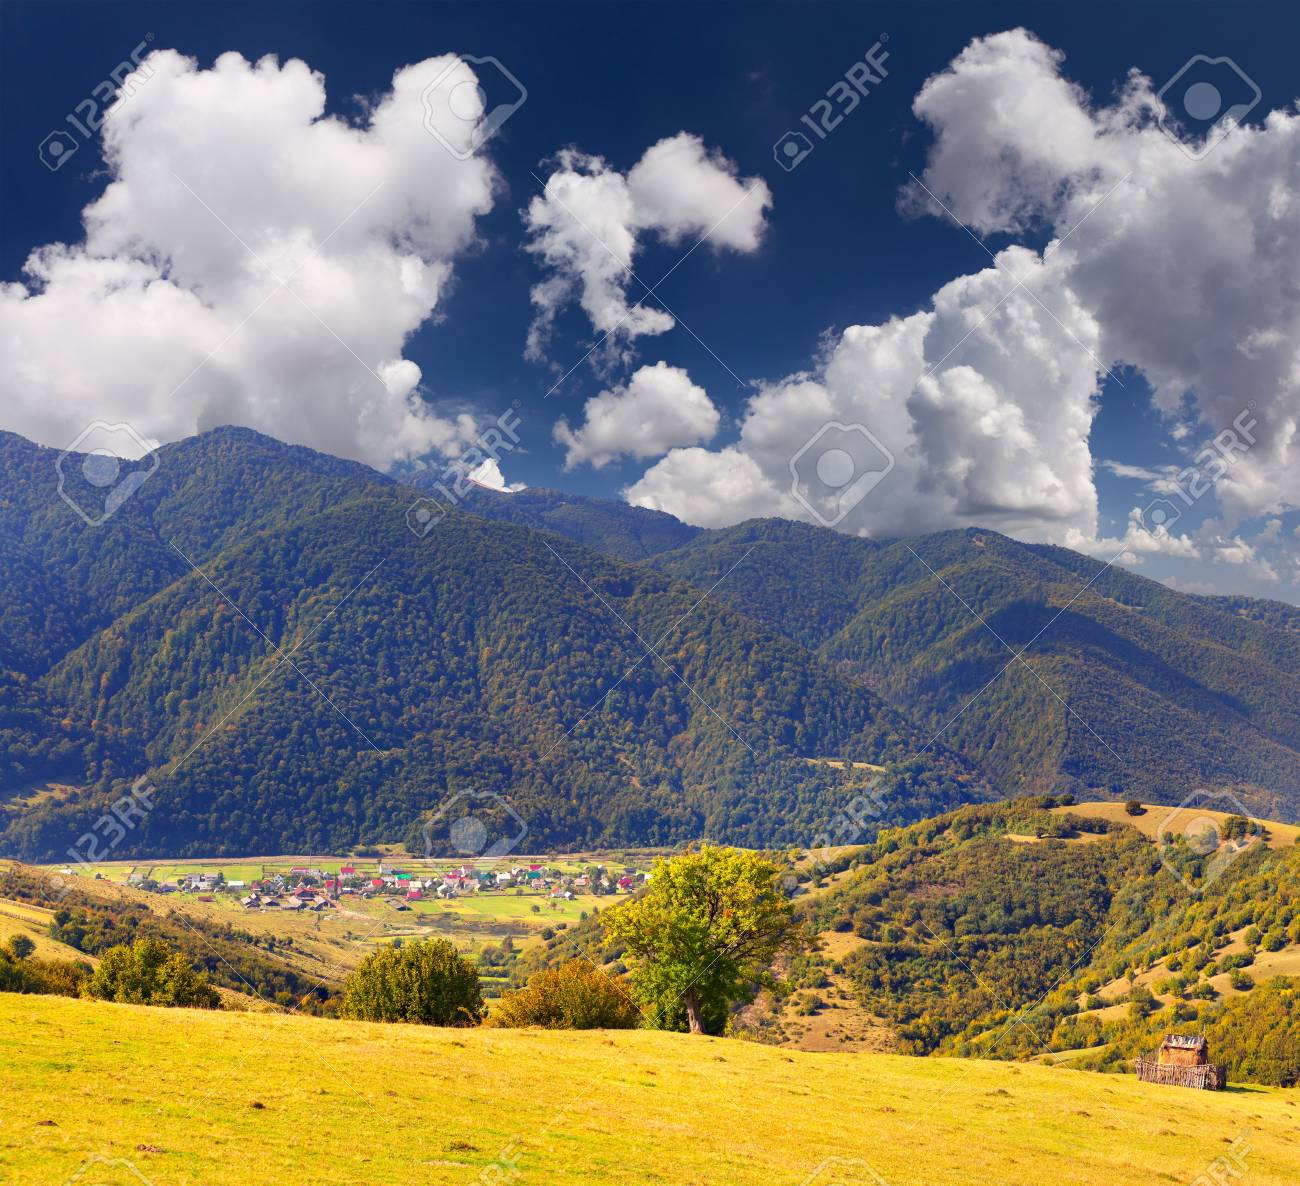 Colorful autumn landscape in the mountains village Stock Photo - 13178535